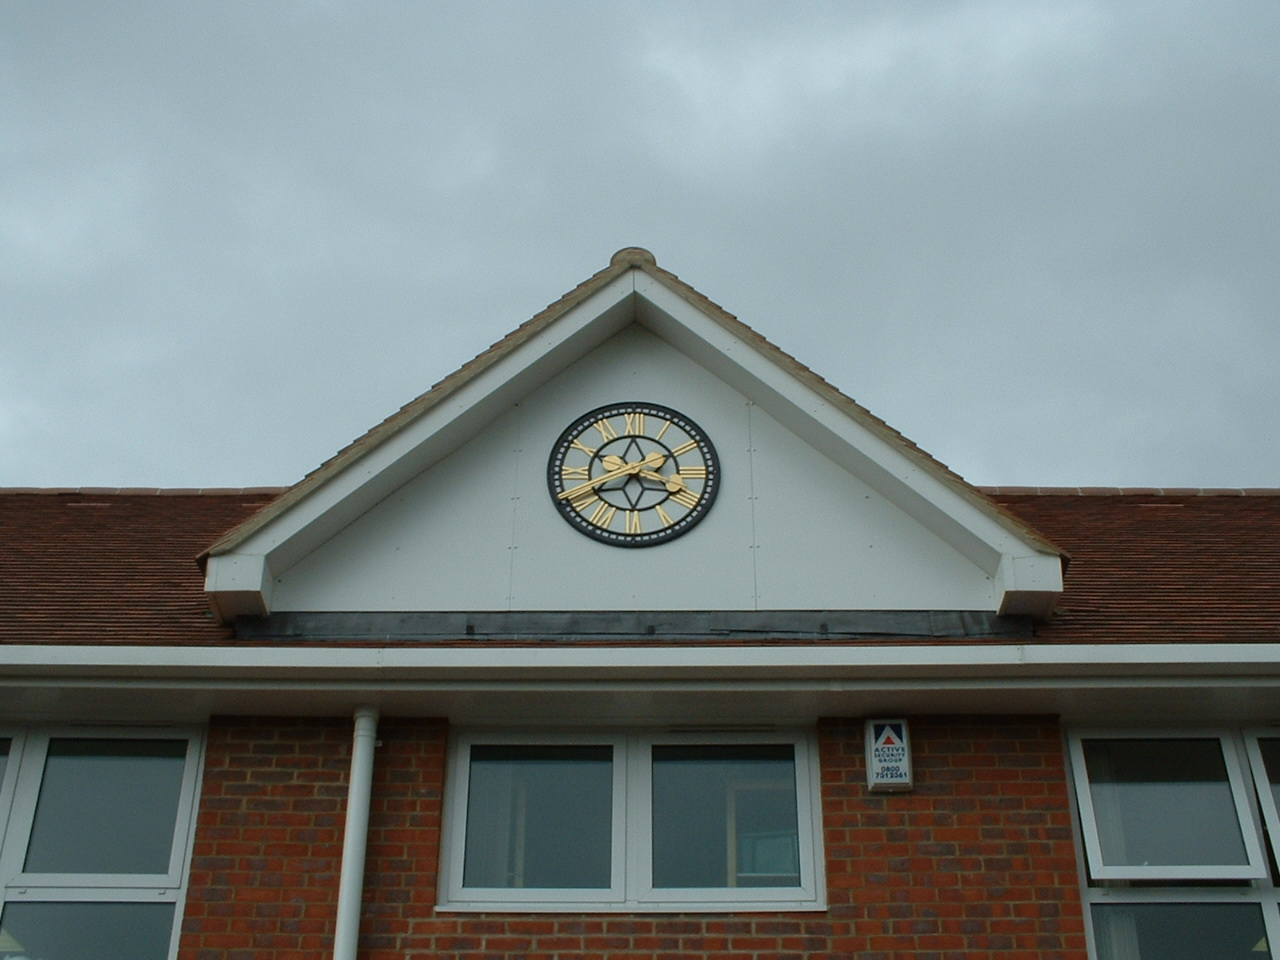 Large Outdoor School Clock